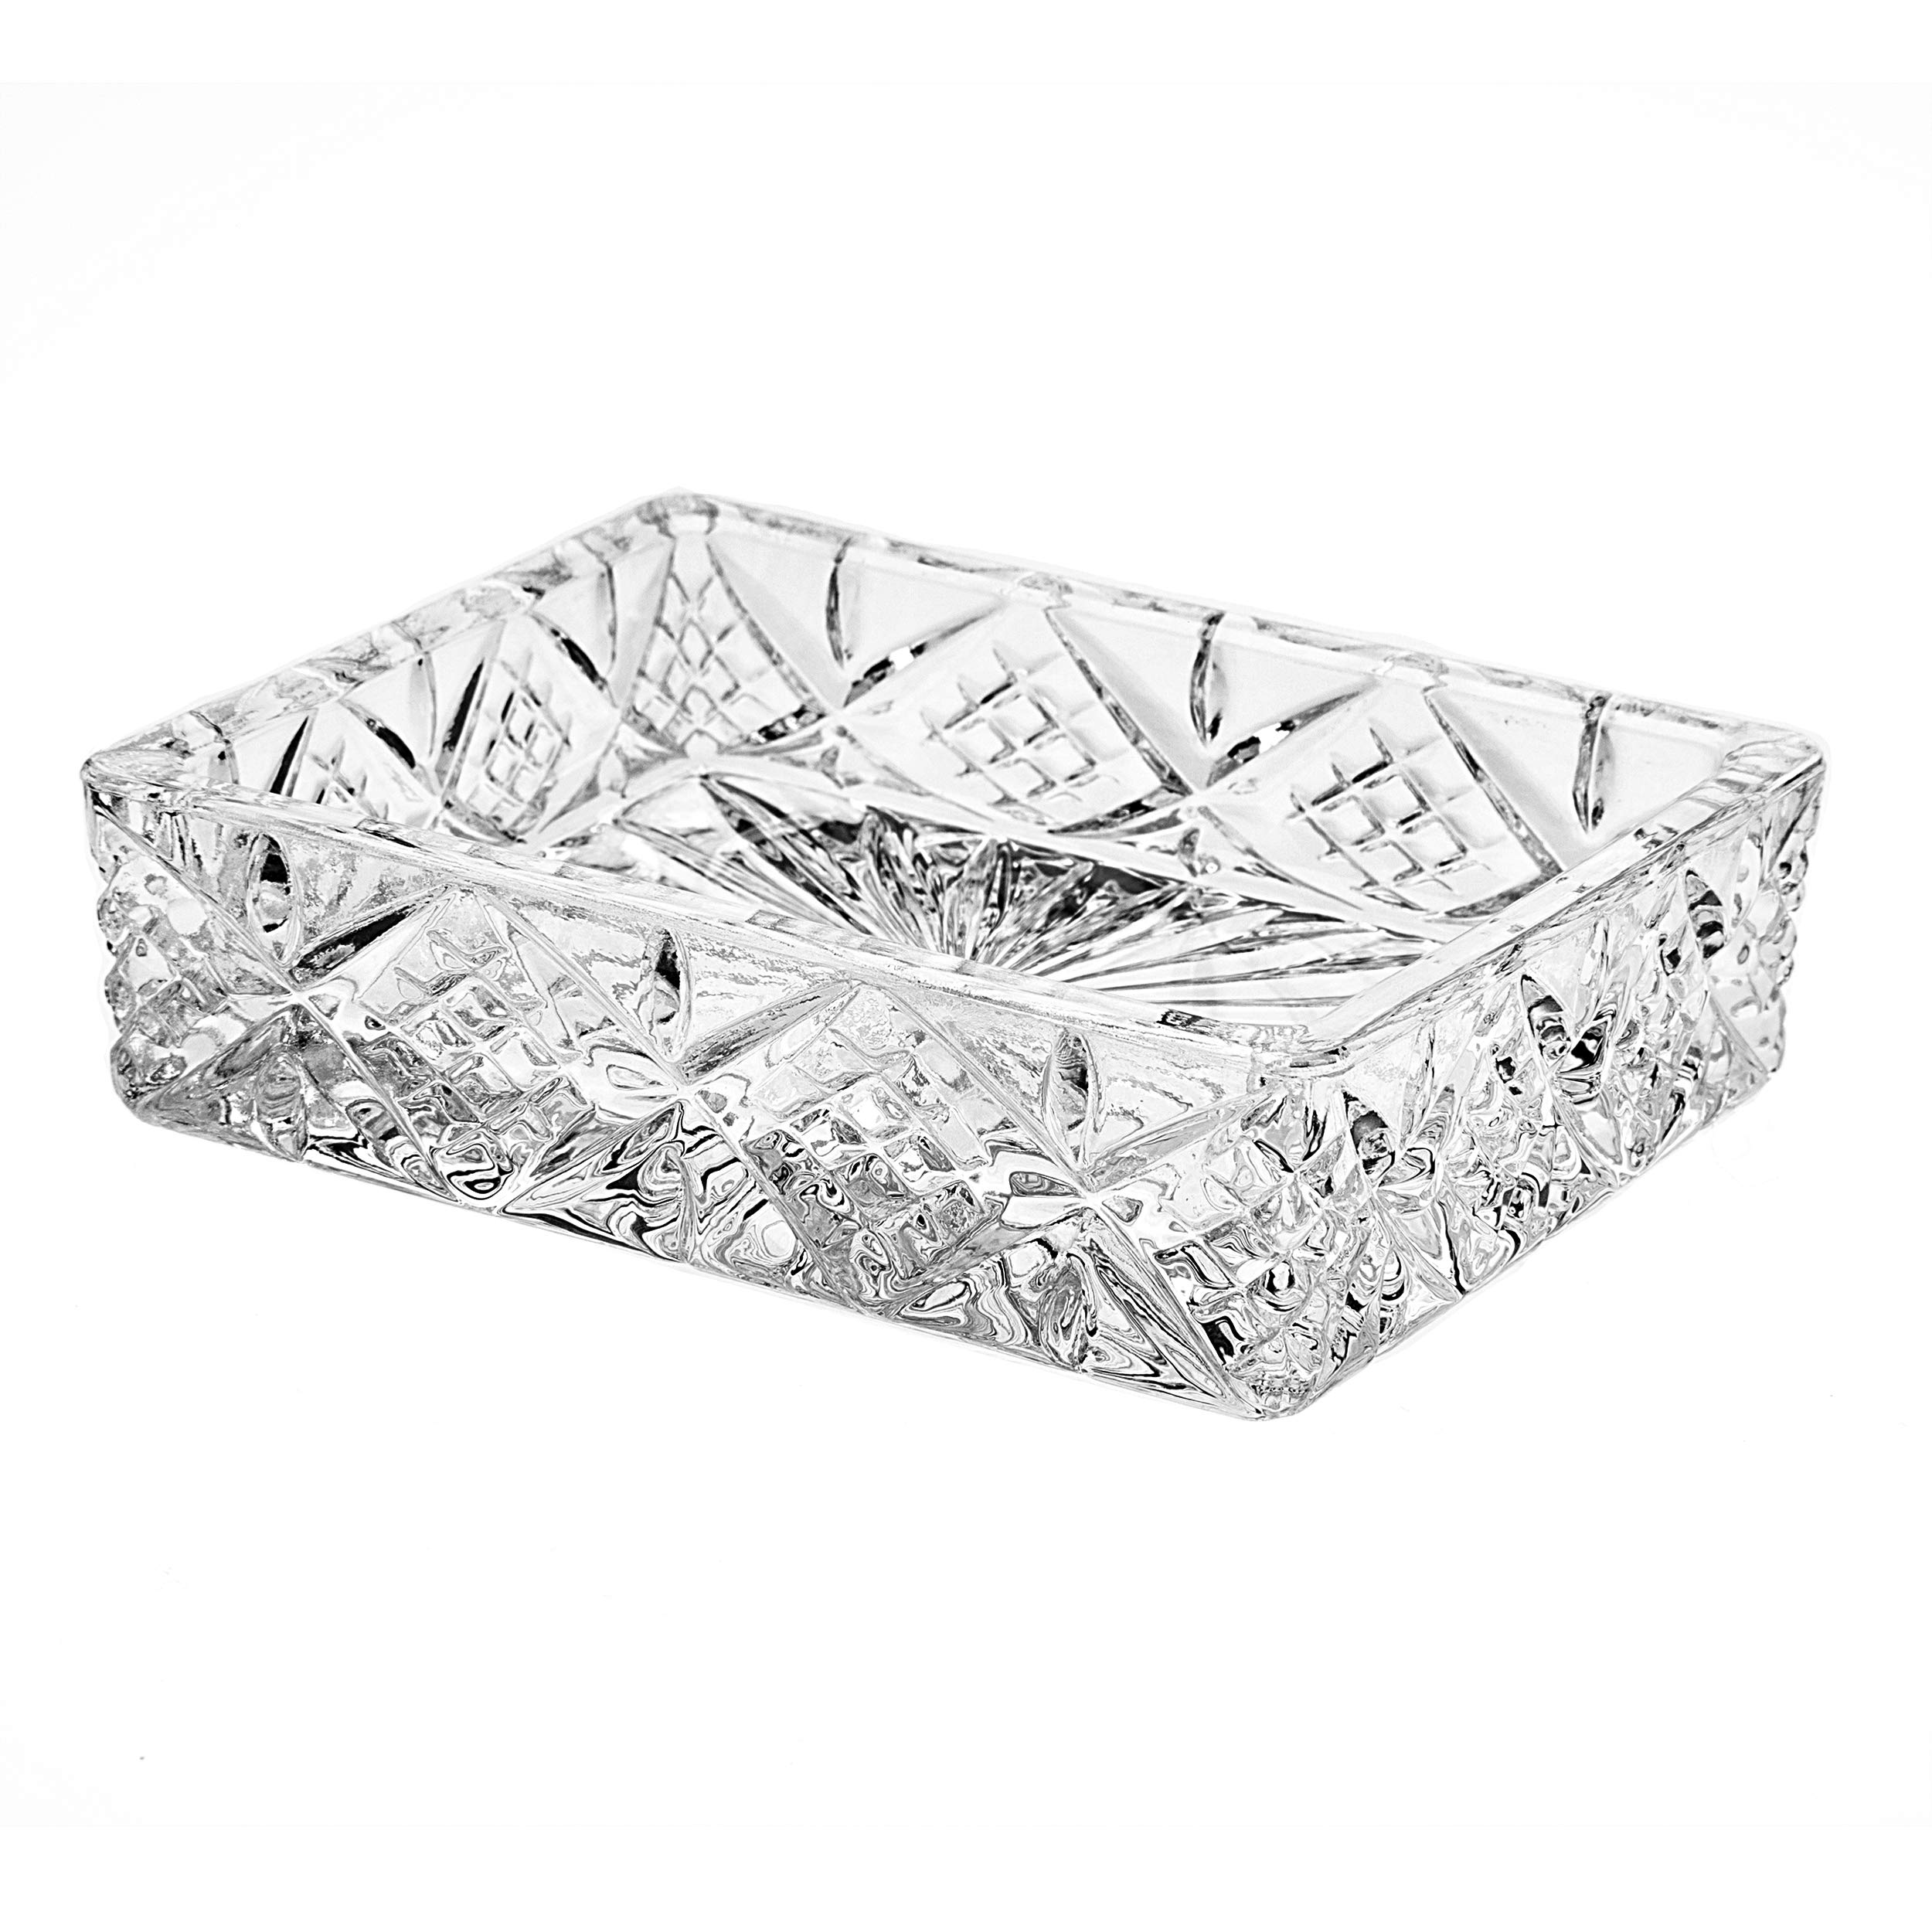 Godinger Crystal Dublin Soap Tray by Godinger